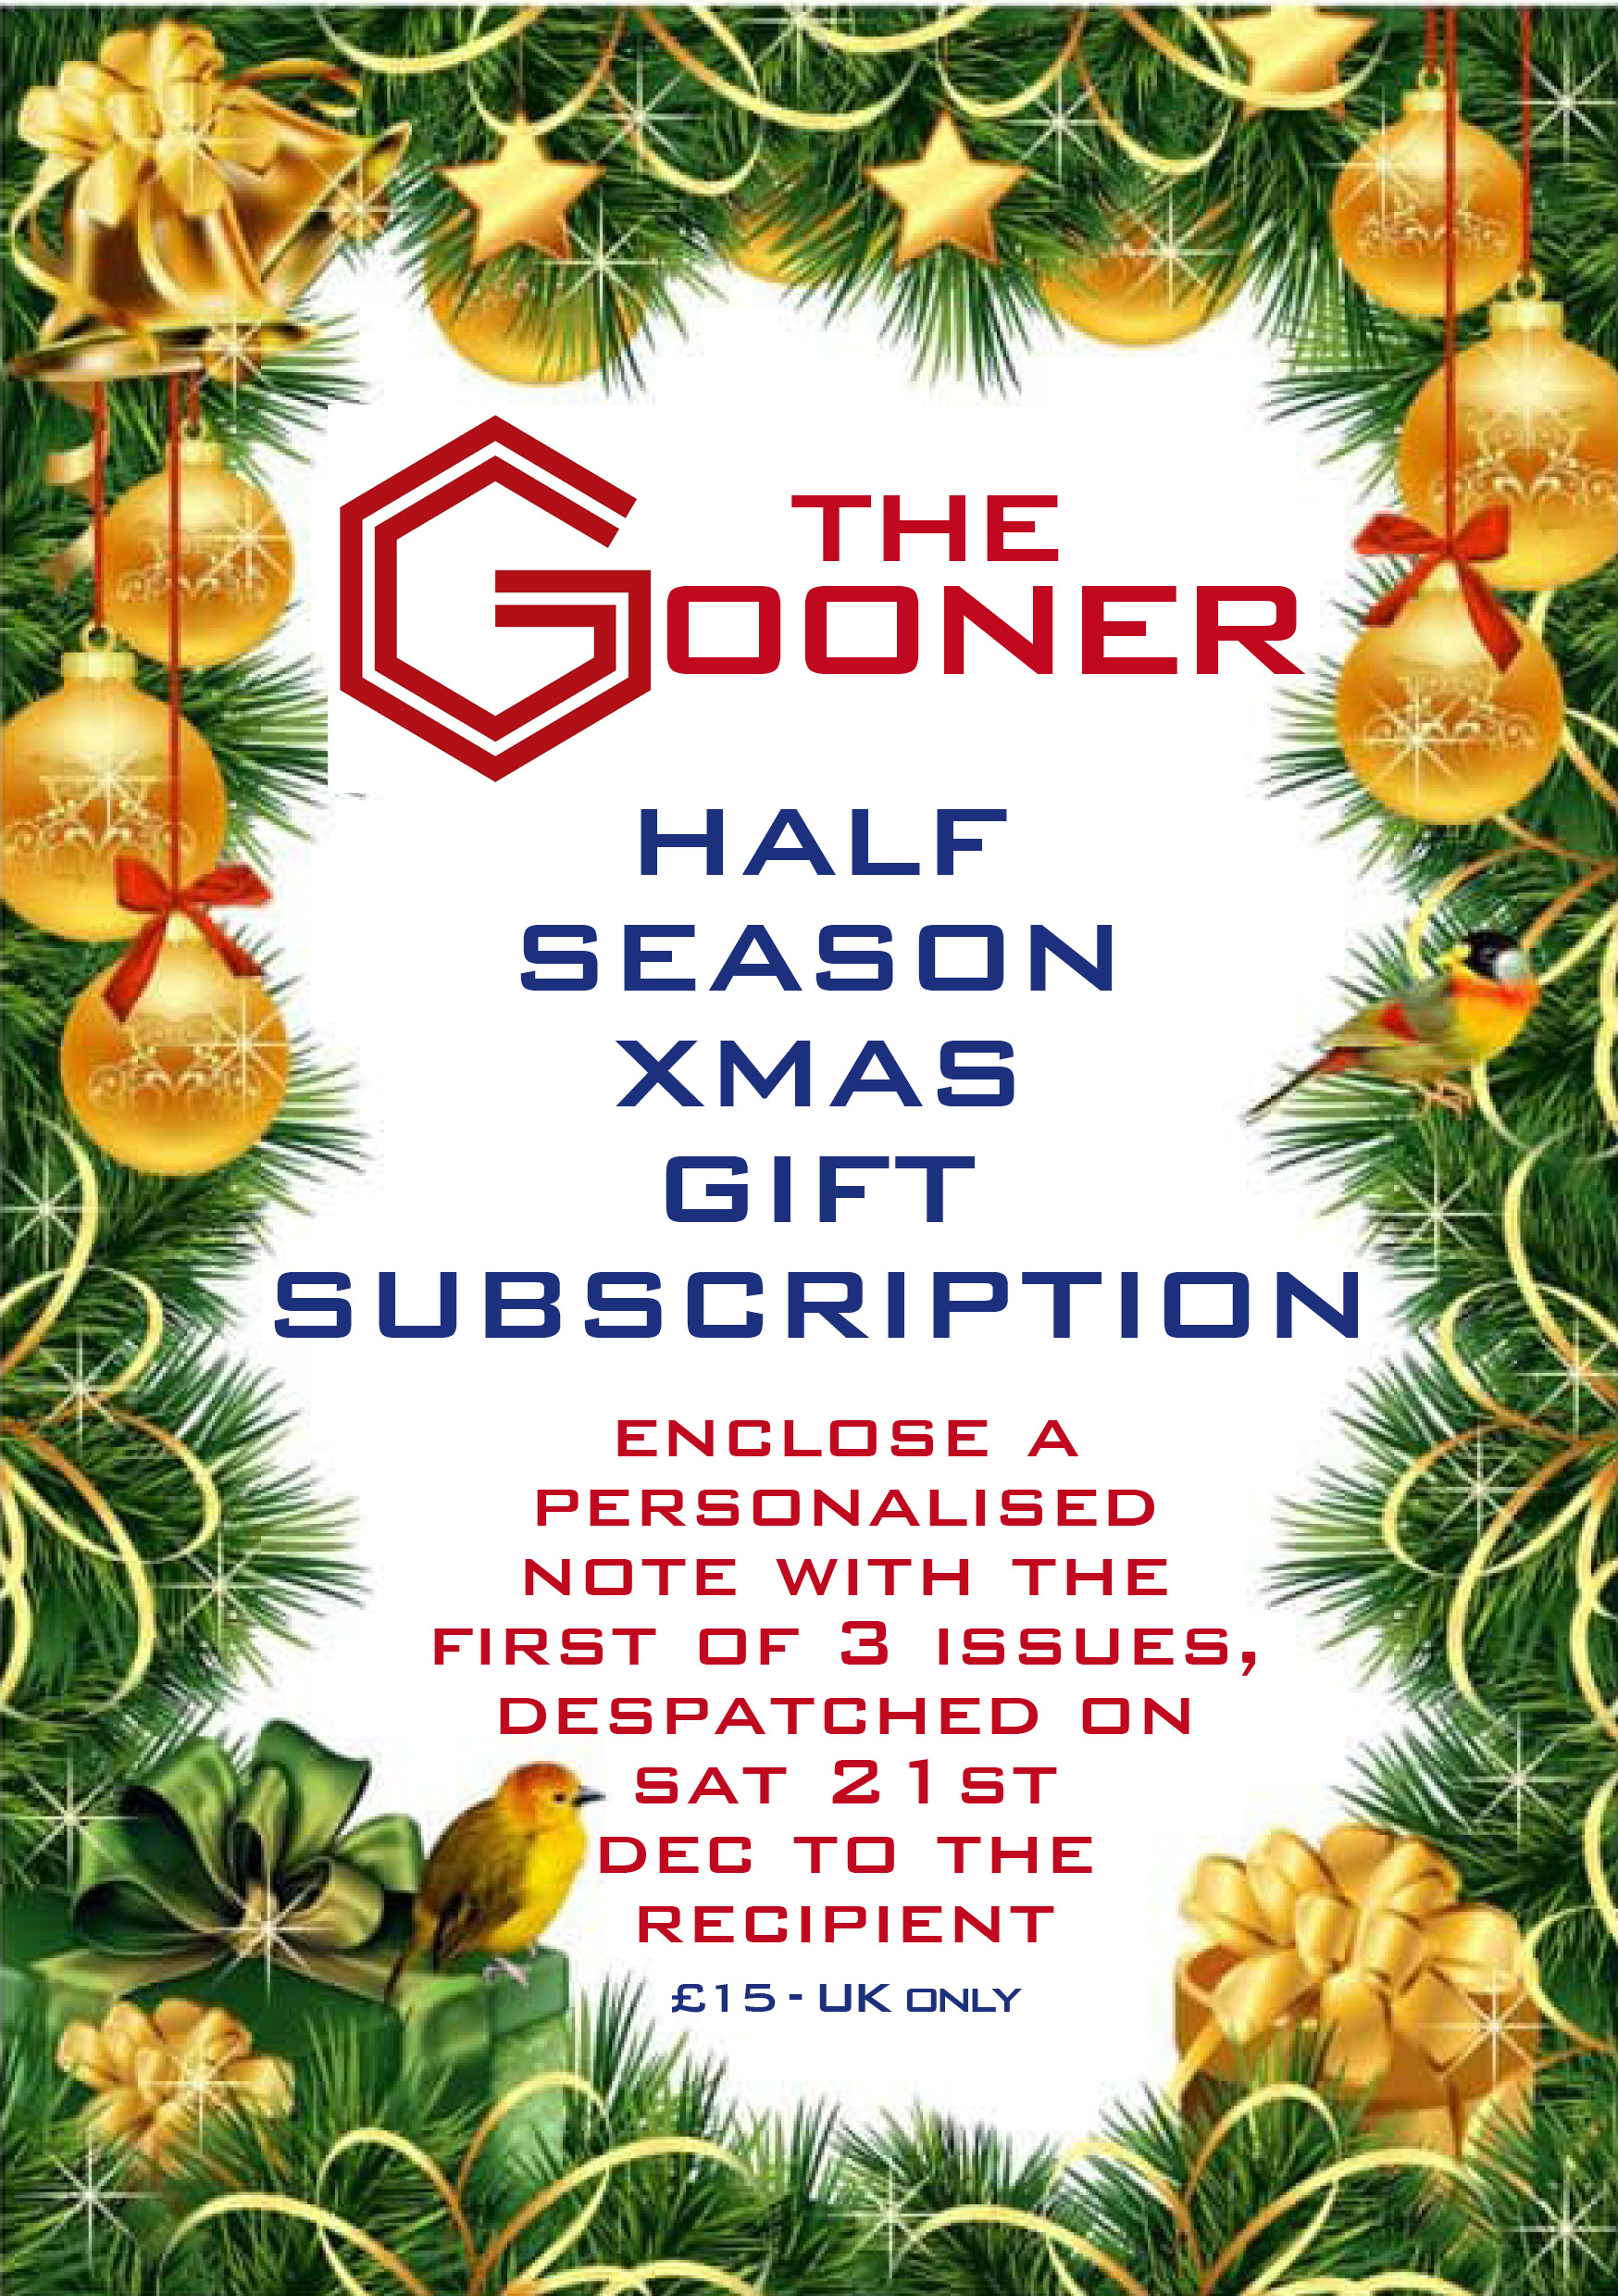 Half Season Gooner Gift Subscription